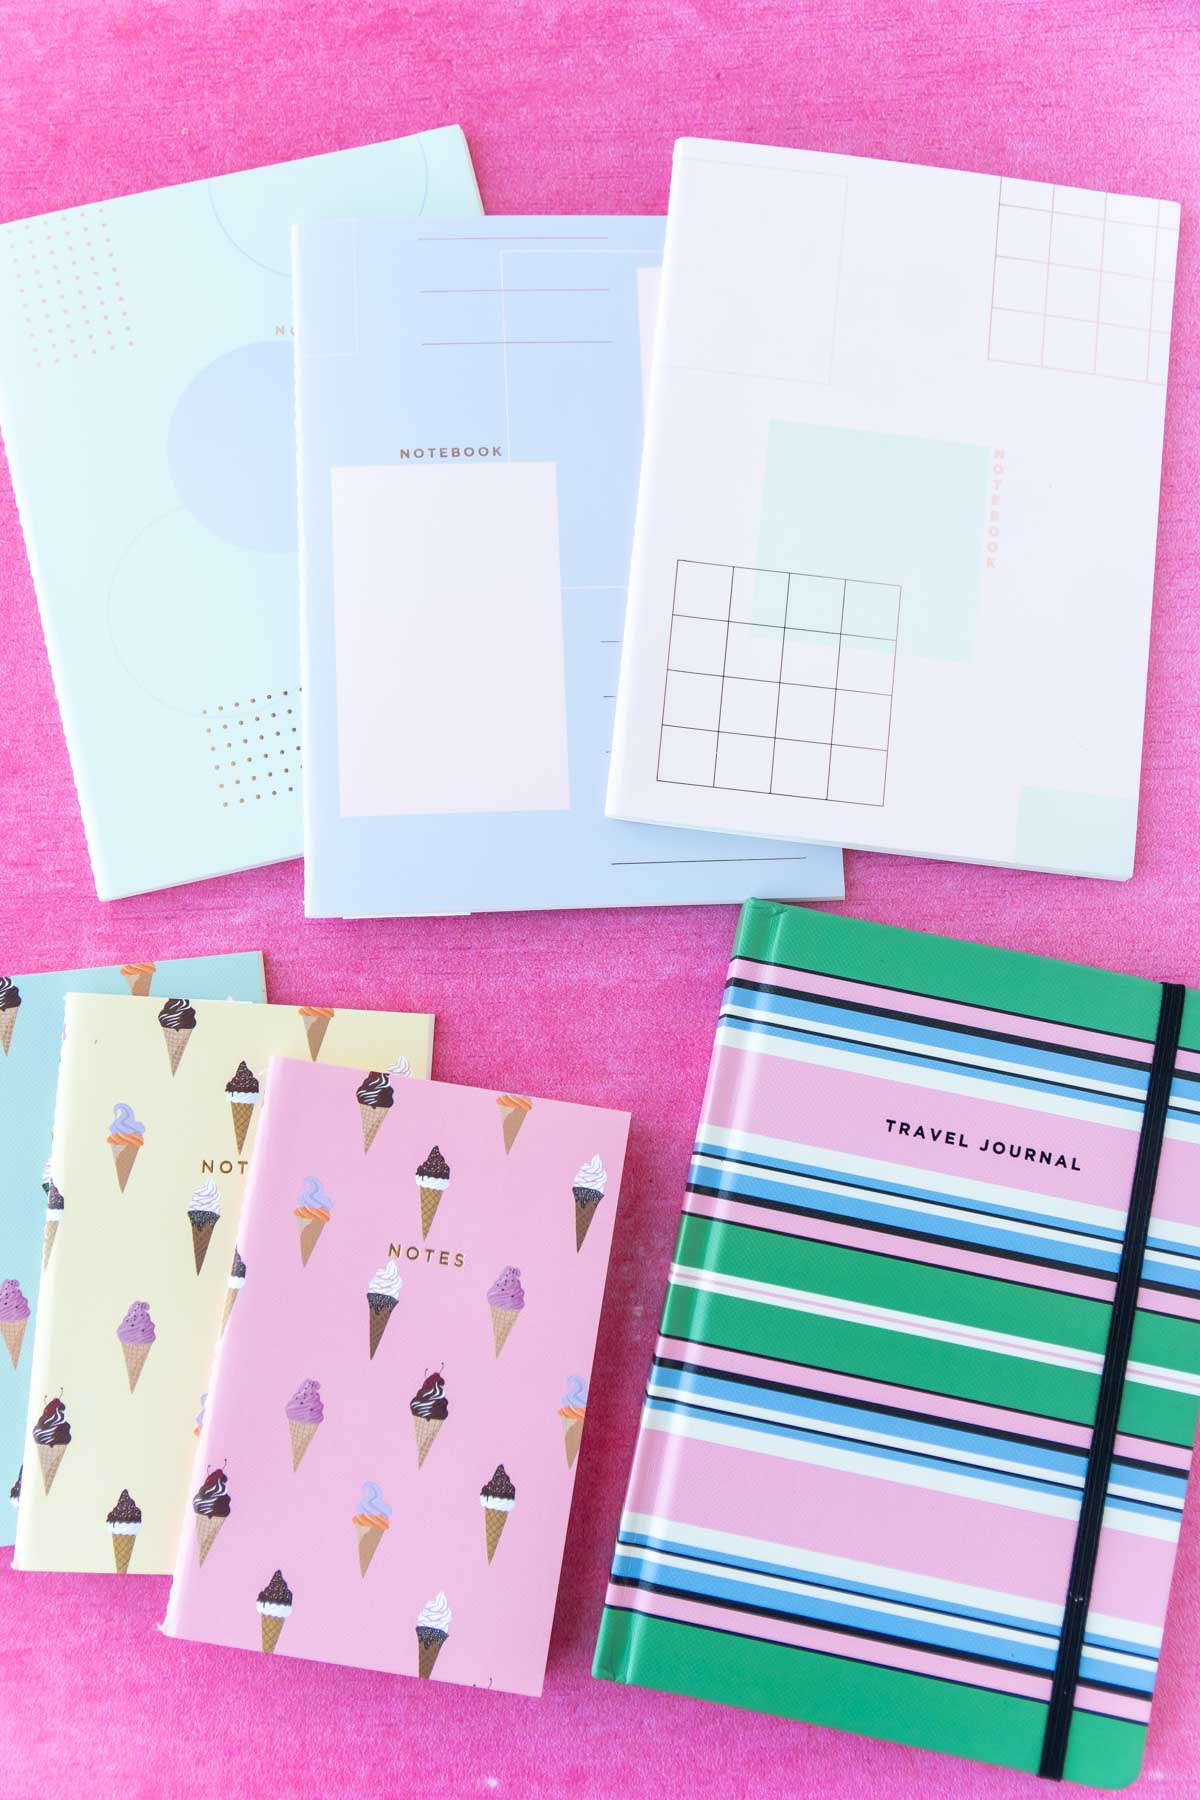 colorful notebooks and planners in a pile